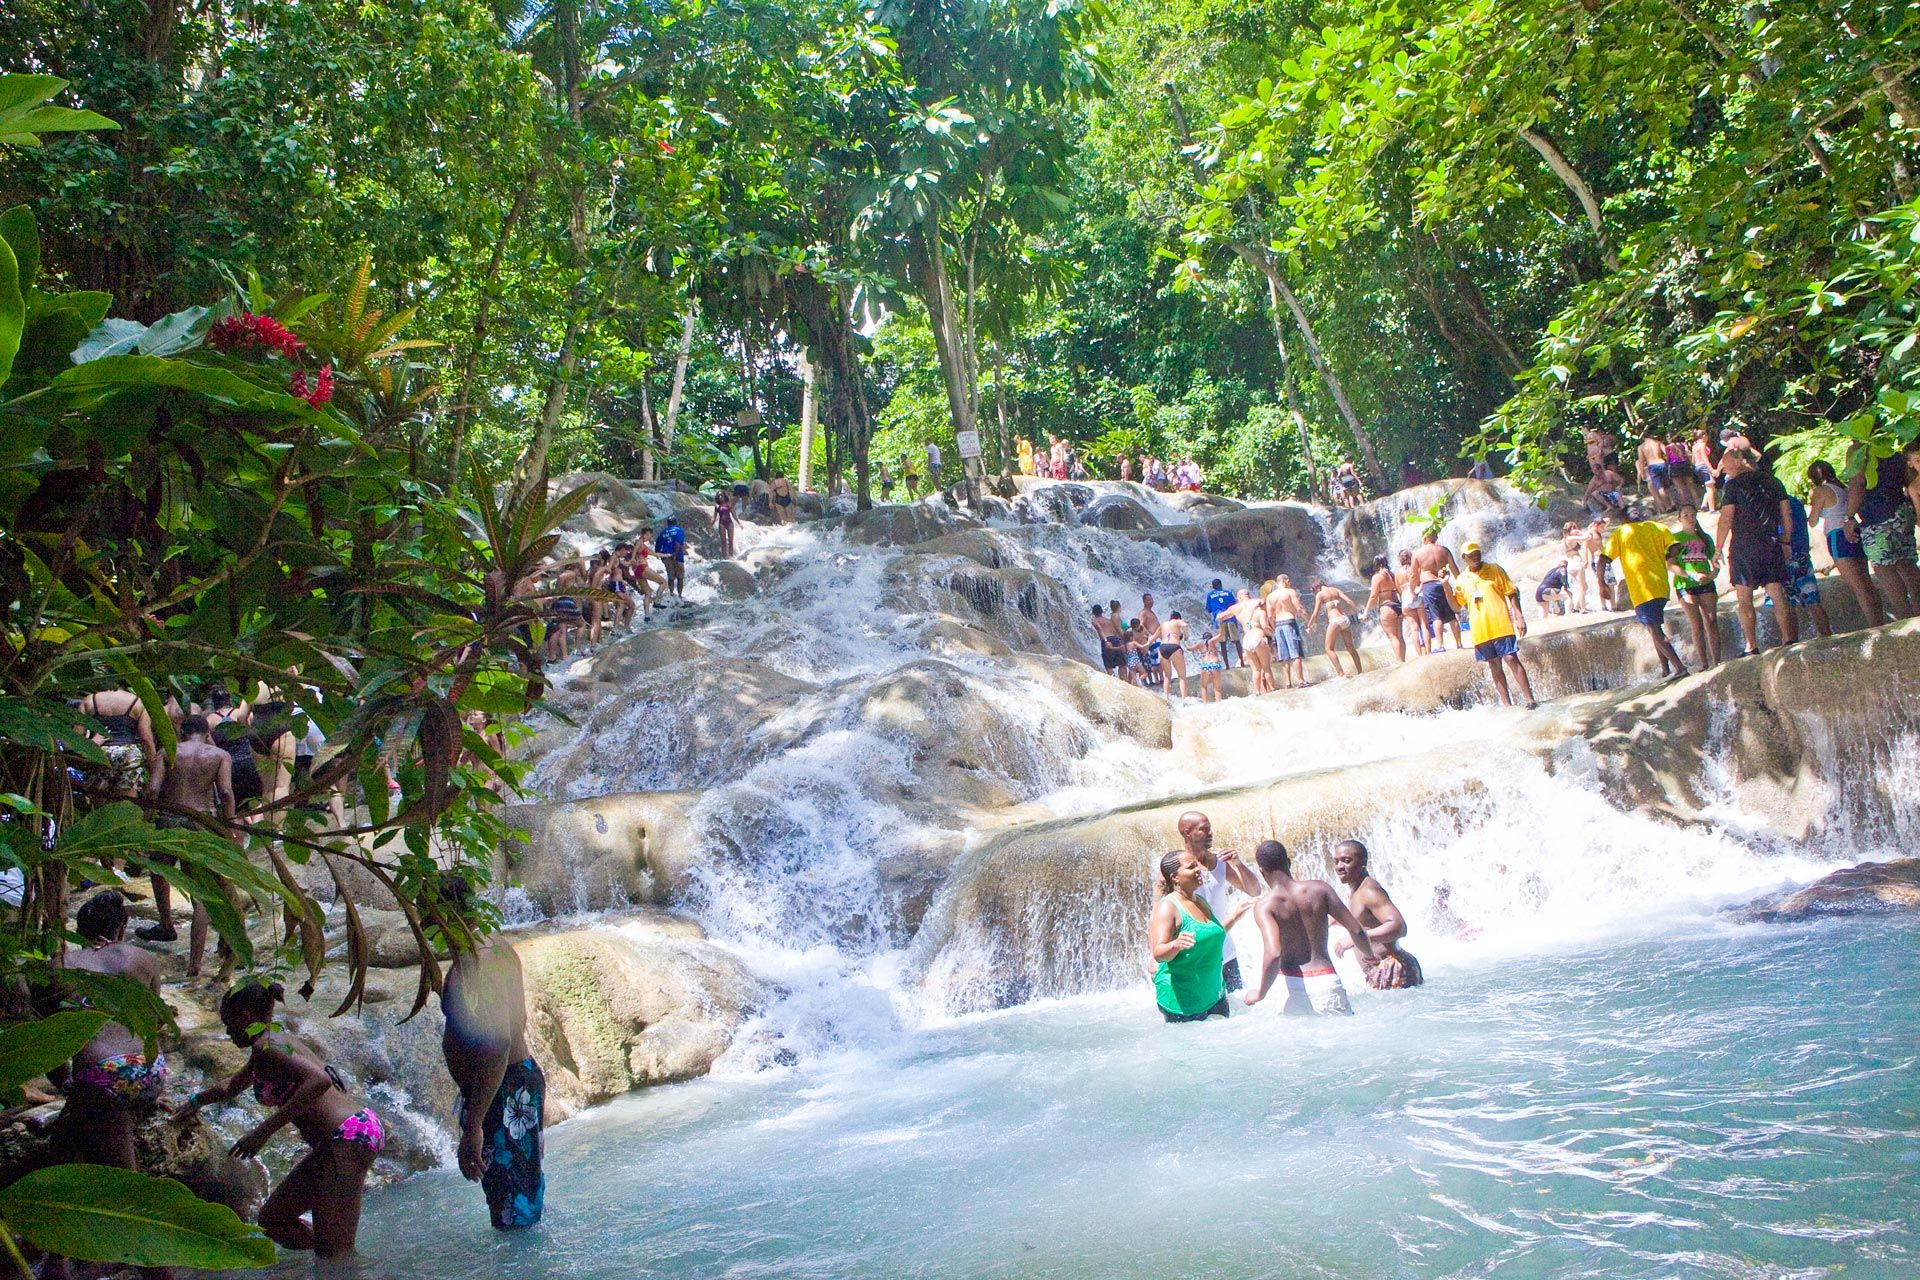 Crowds at Dunn's River Falls Jamaica